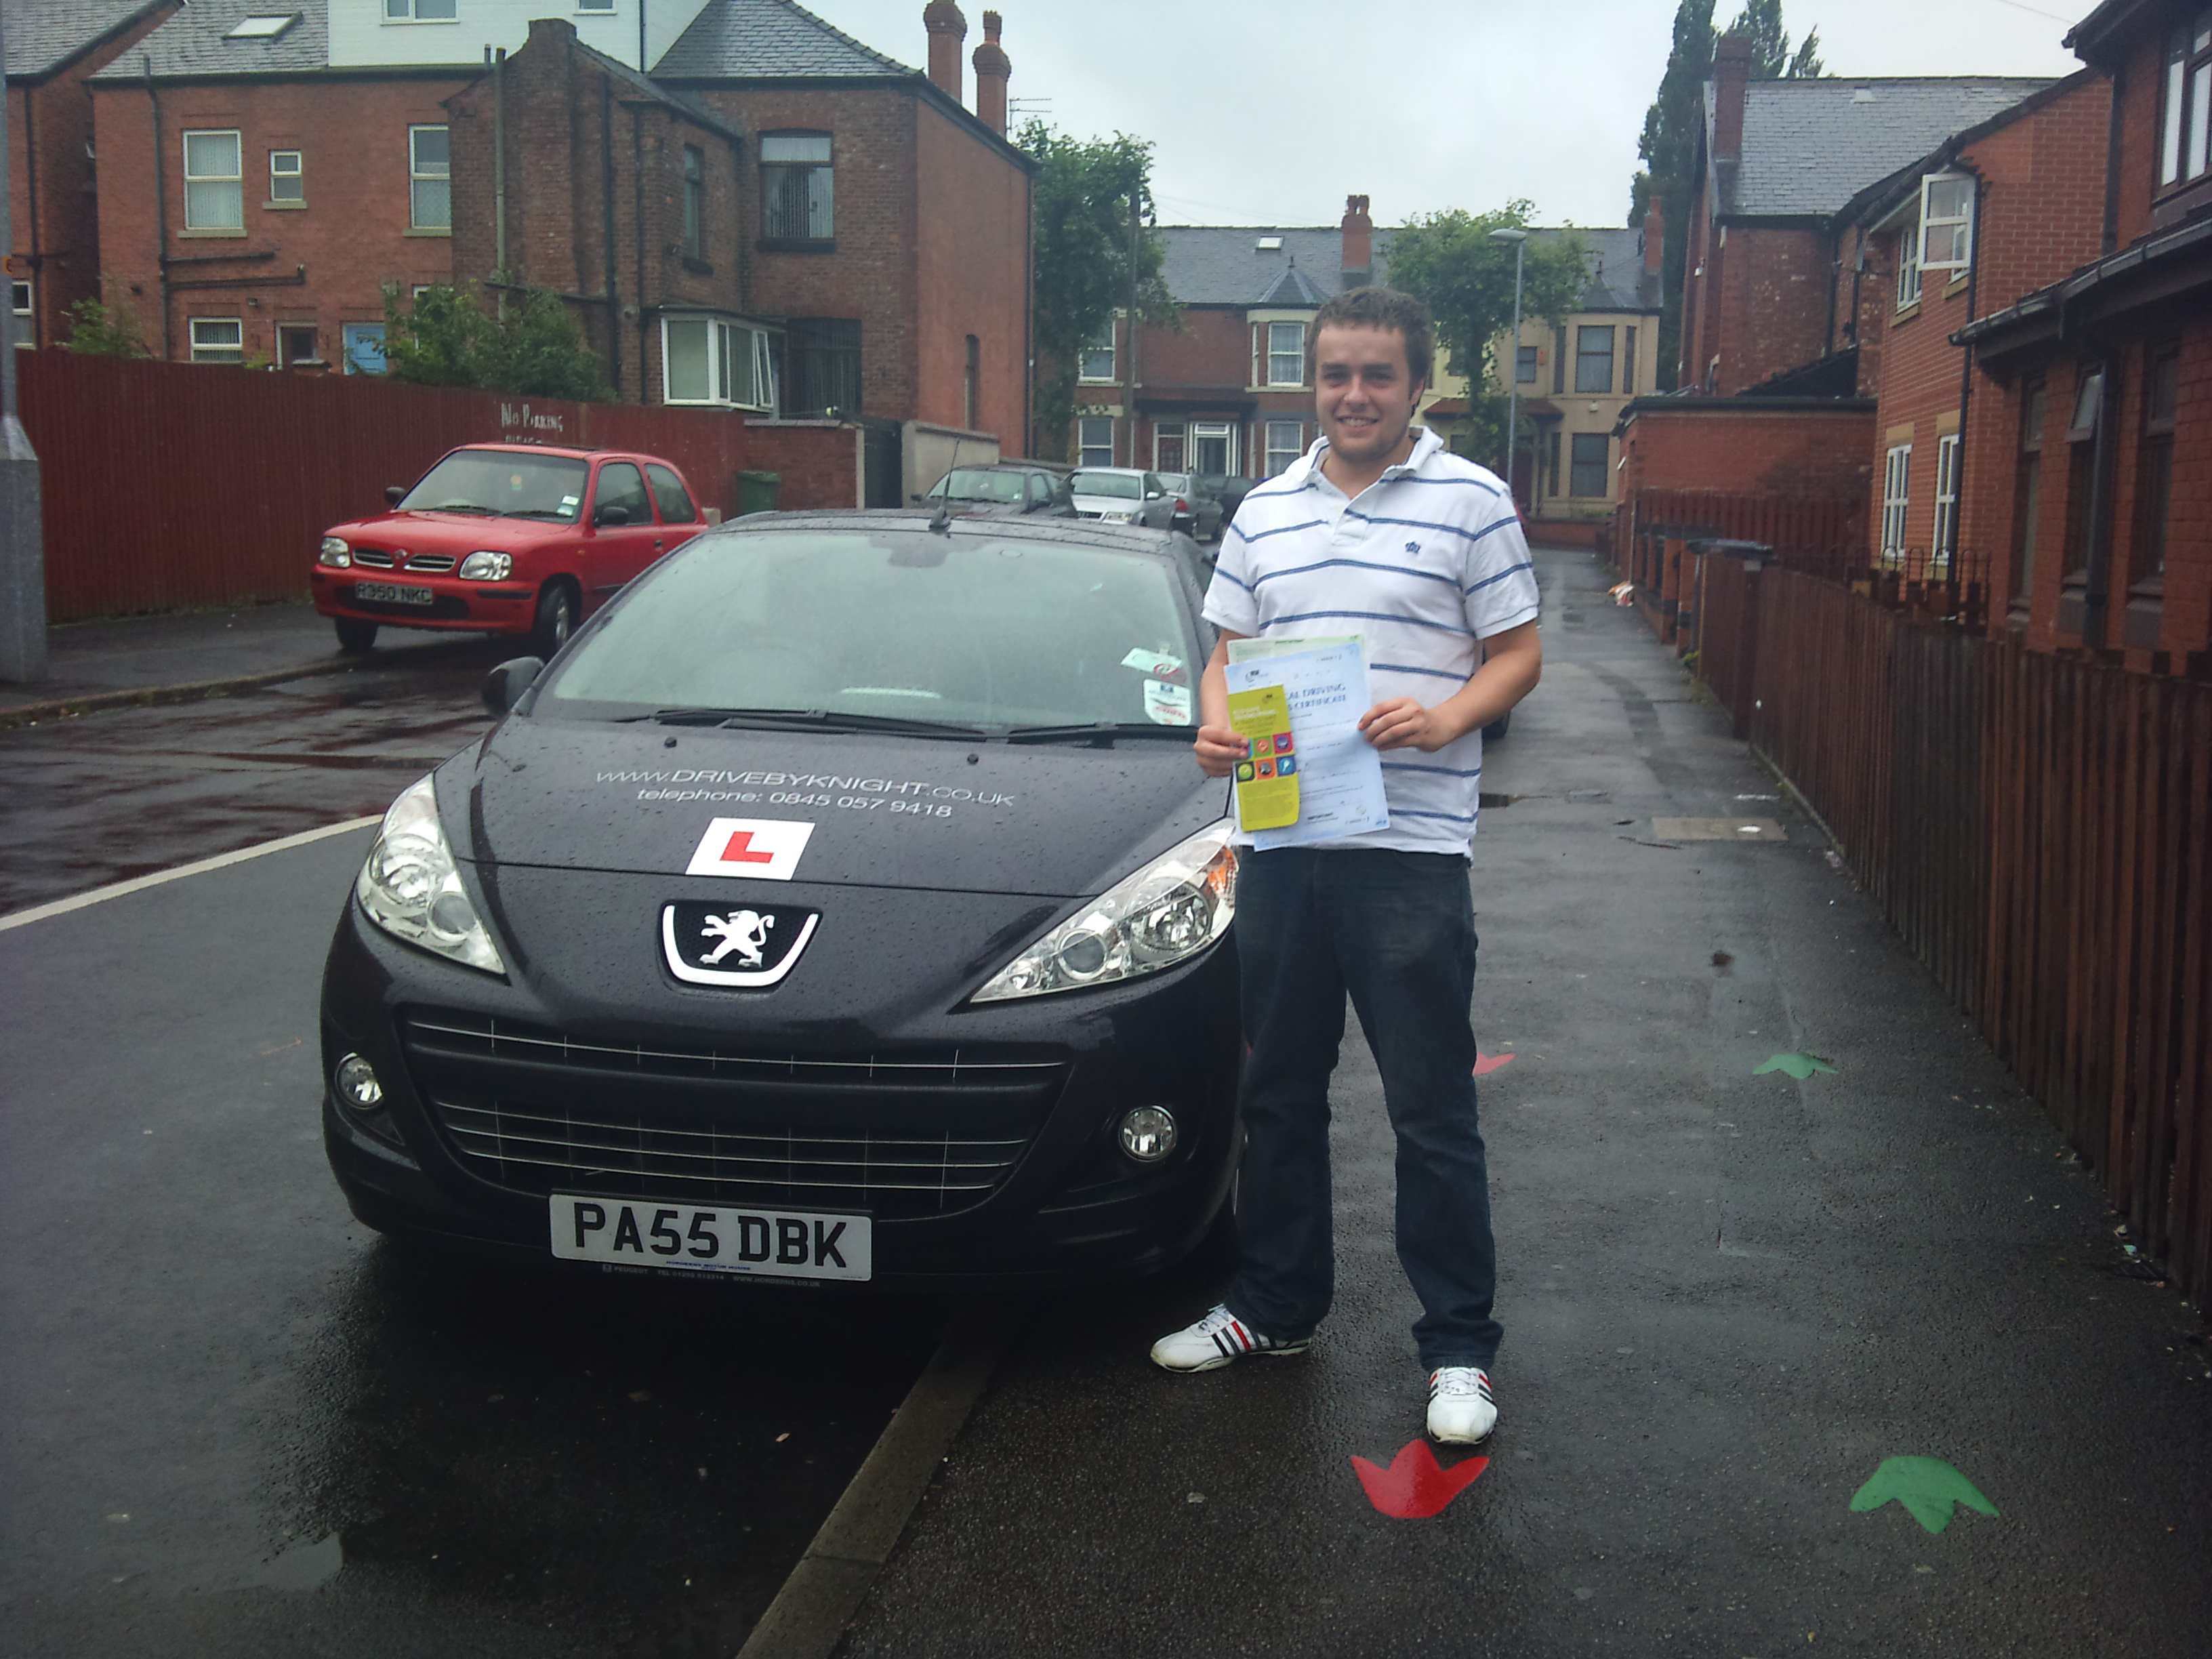 Intensive driving courses Stockport, One week driving courses Stockport, Driving Lessons Stockport